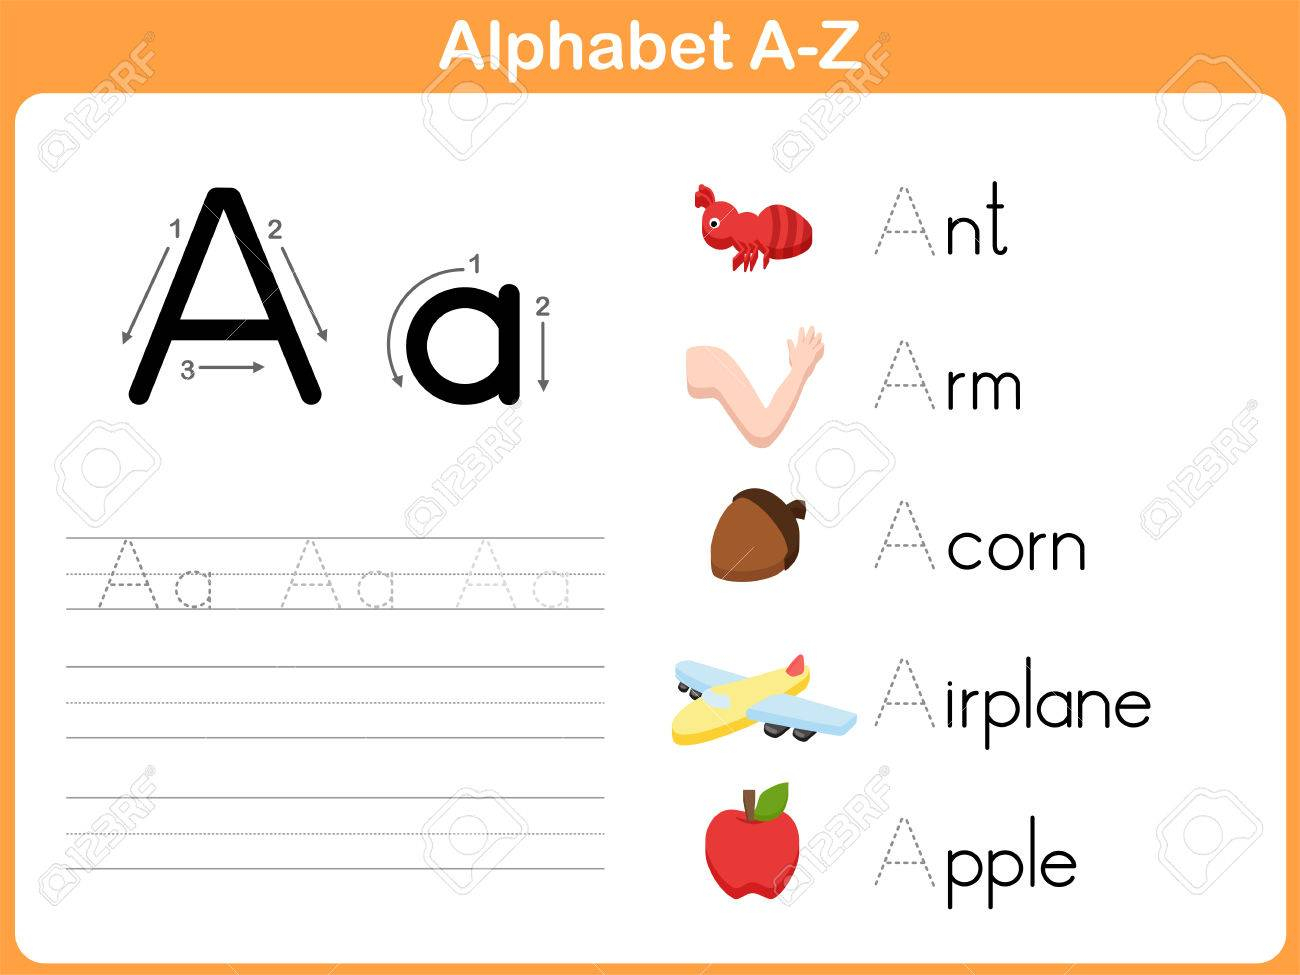 Alphabet Tracing Worksheet: Writing A-Z with A-Z Alphabet Tracing